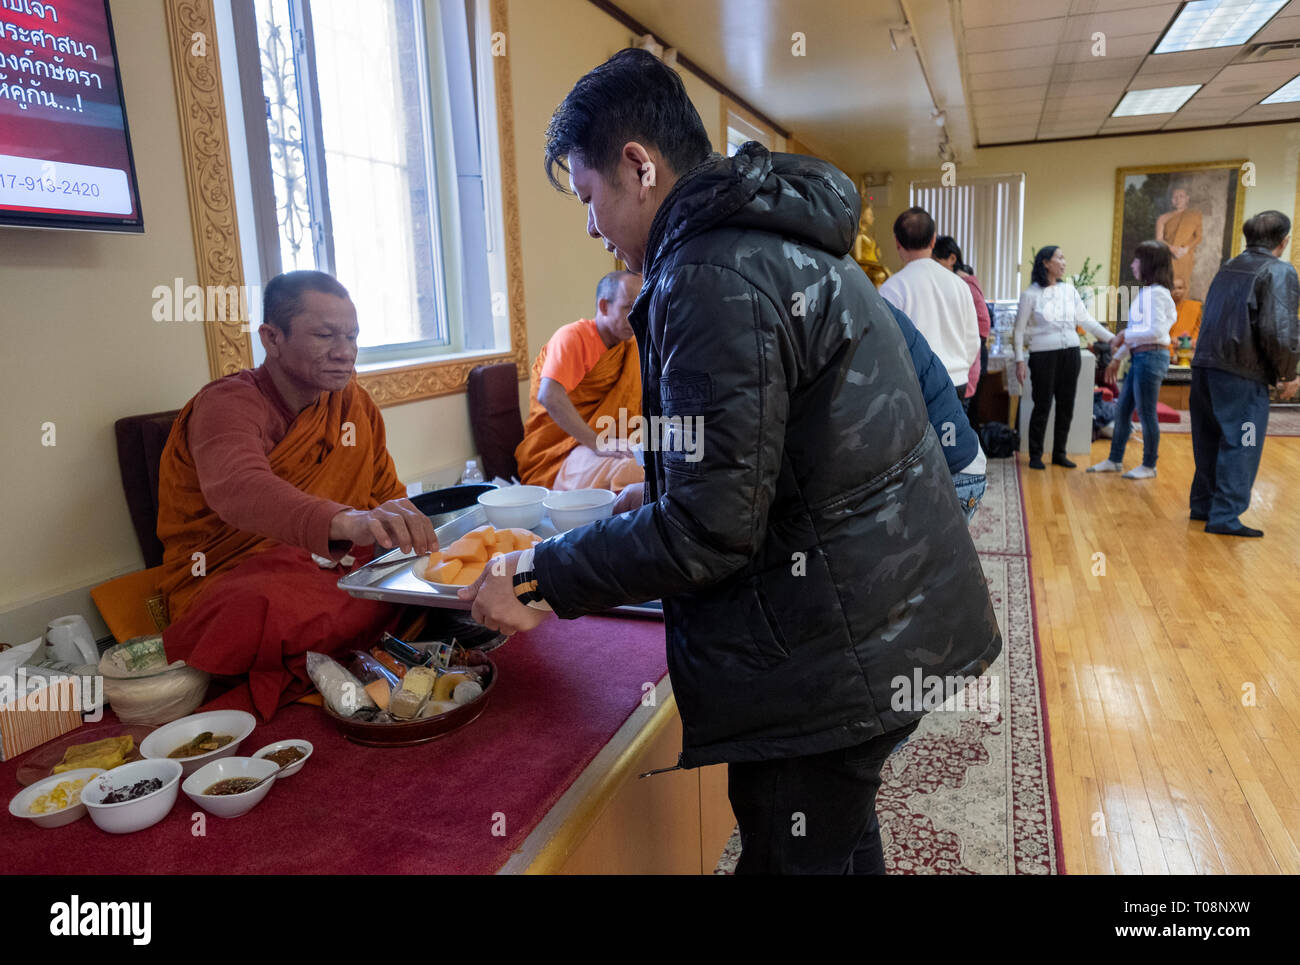 Worshippers at a Buddhist temple form an assembly line to serve food especially prepared for their monks. In Elmhurst, Queens, New York City. - Stock Image